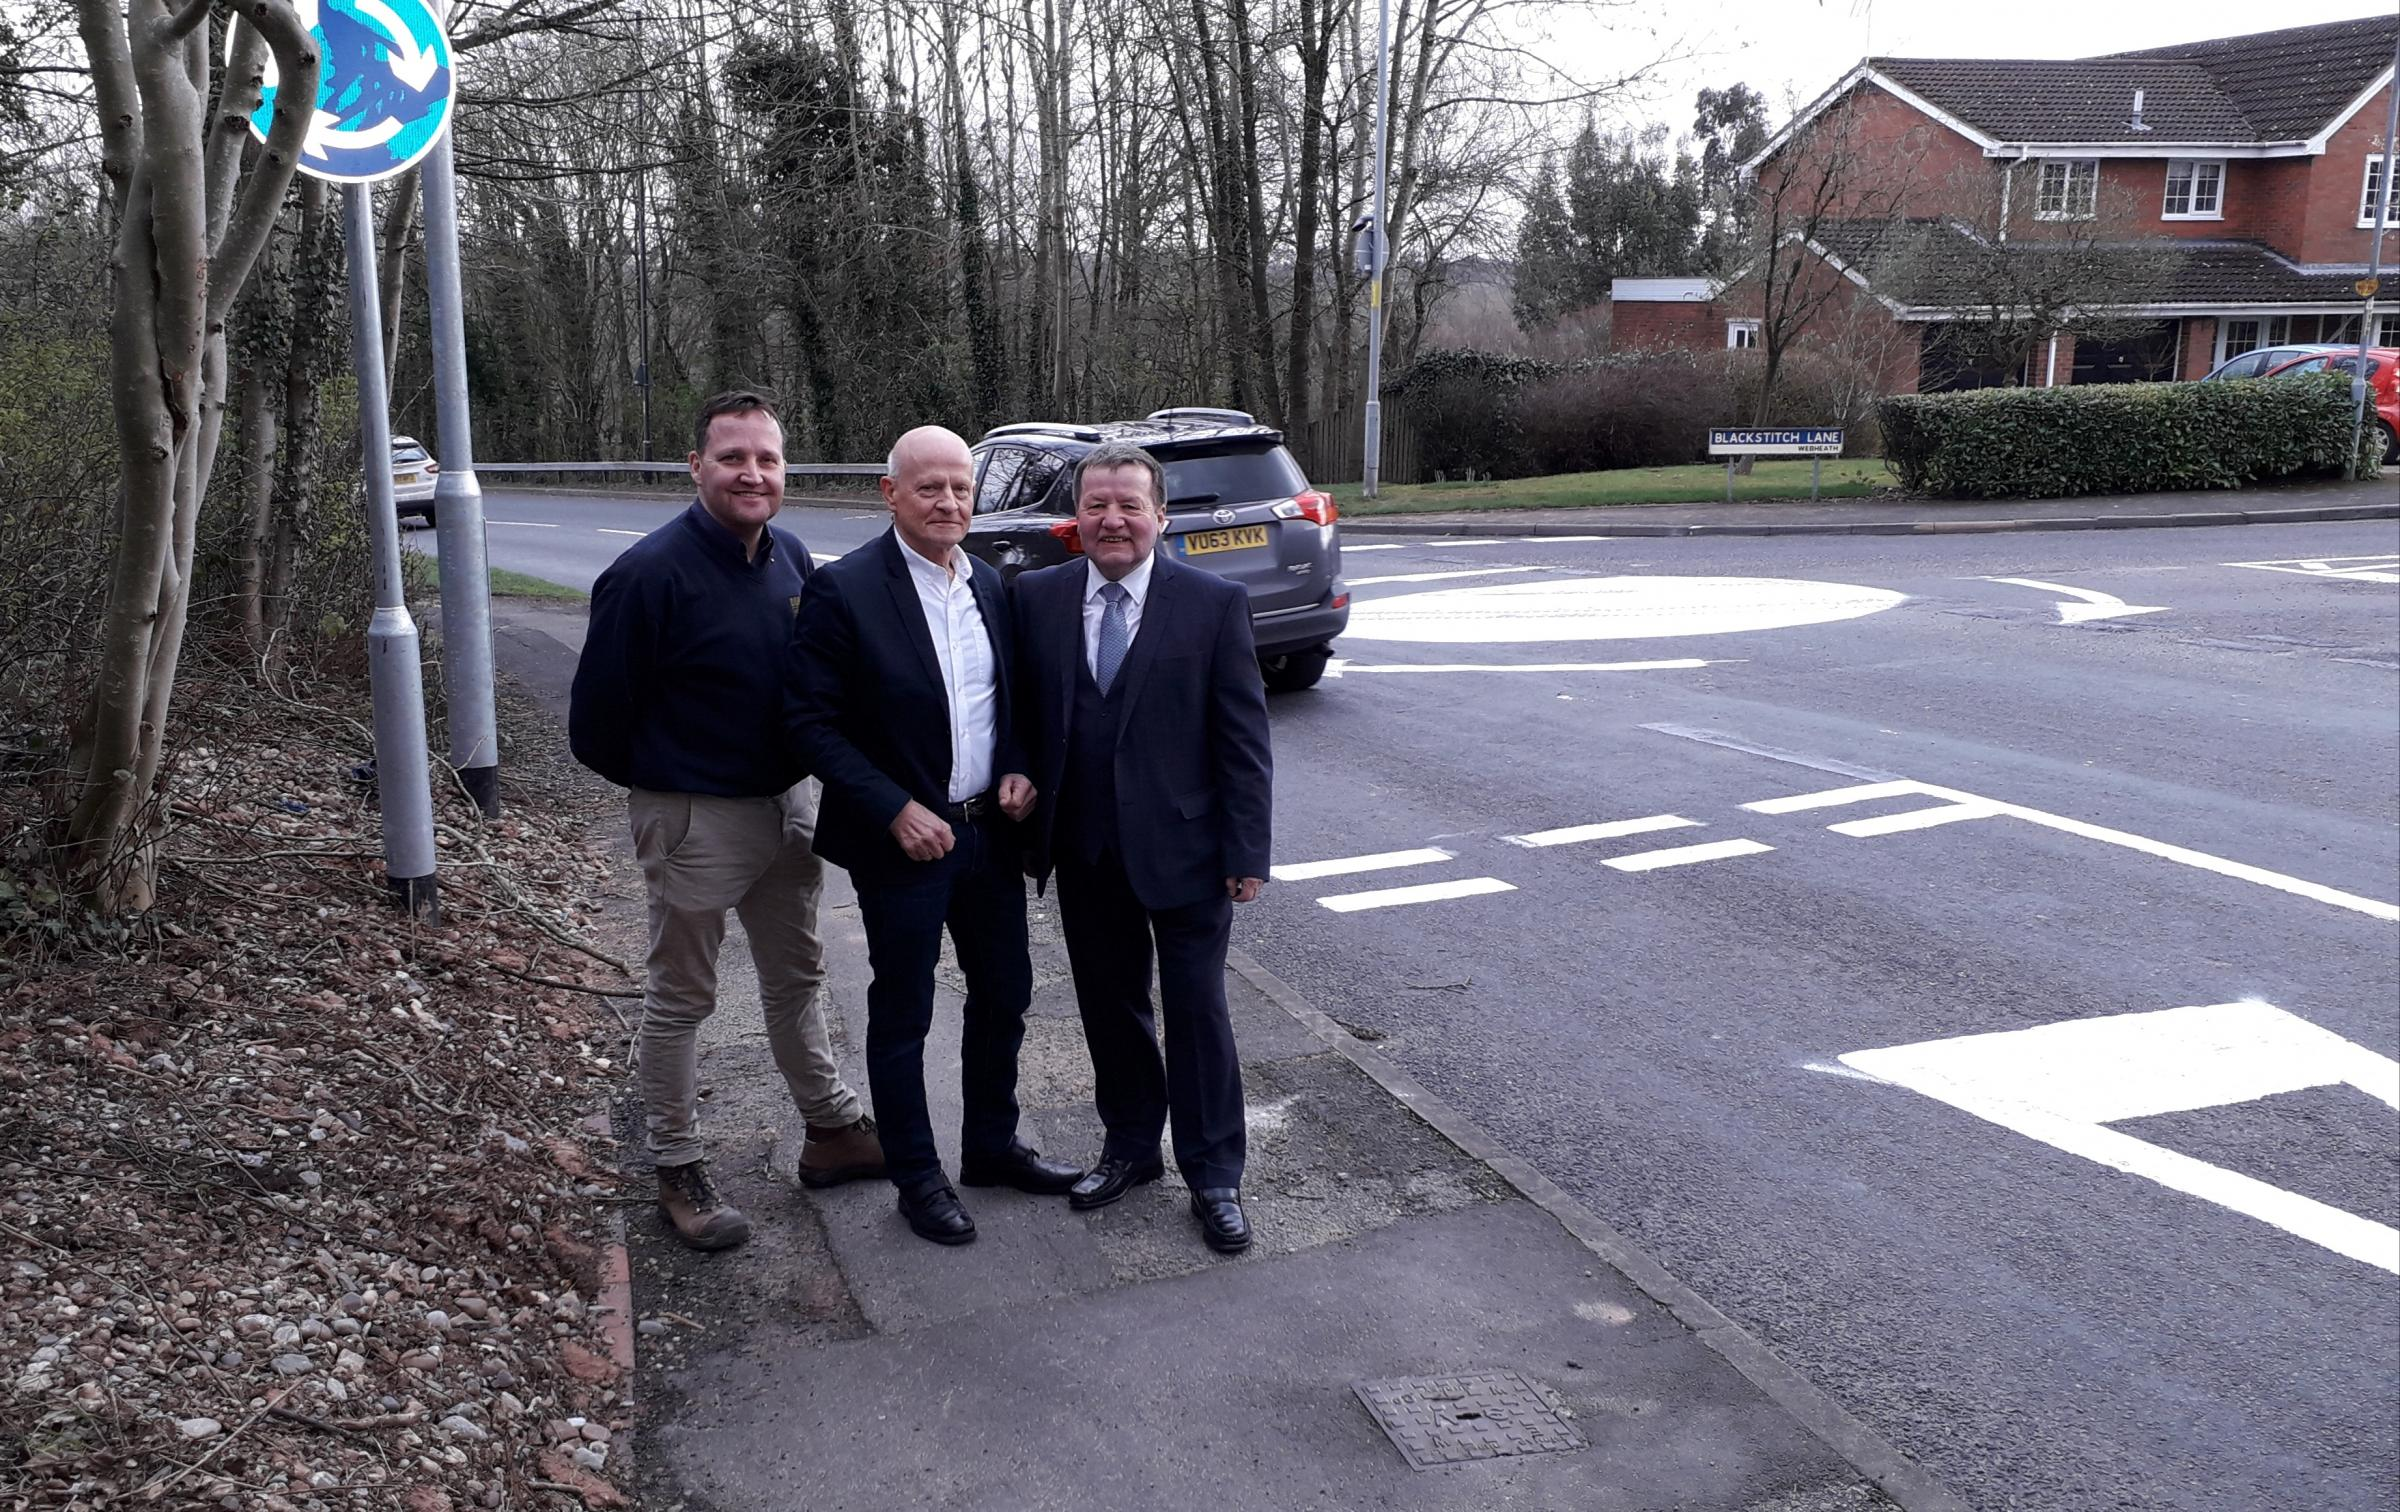 Council leader Matt Dormer, David Thain, and Councillor Brandon Clayton by the new island at the junction of Blackstitch Lane and Middlepiece Drive